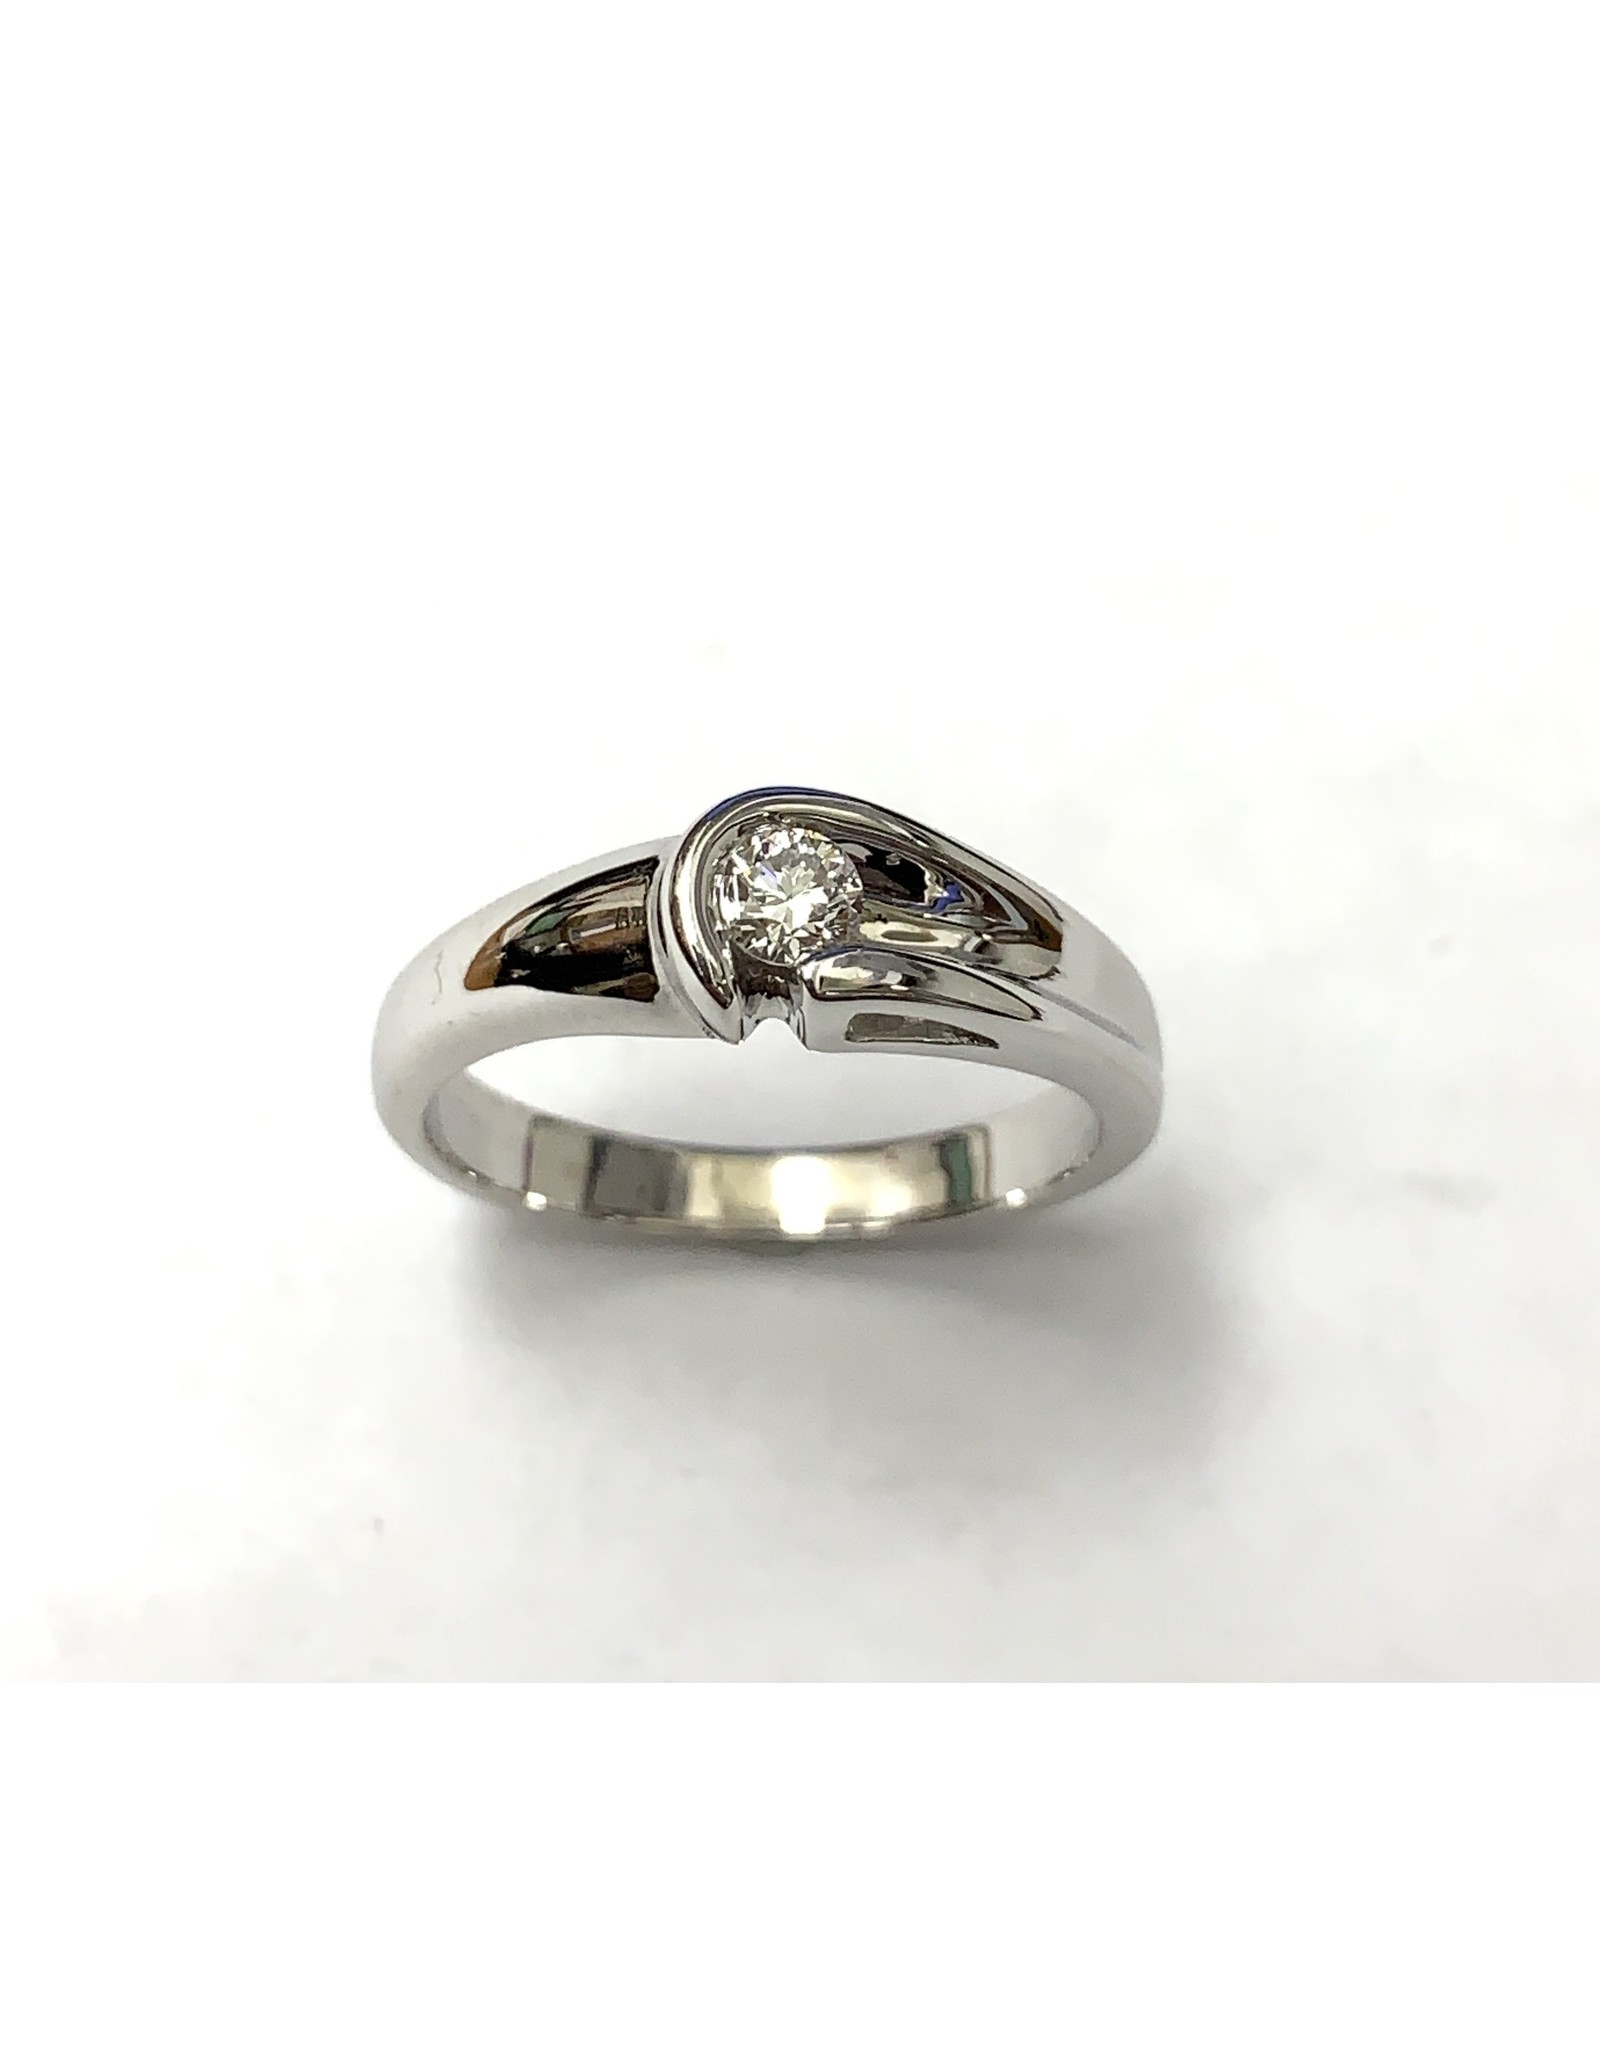 0.13ct Canadian Diamond Ring 14KW